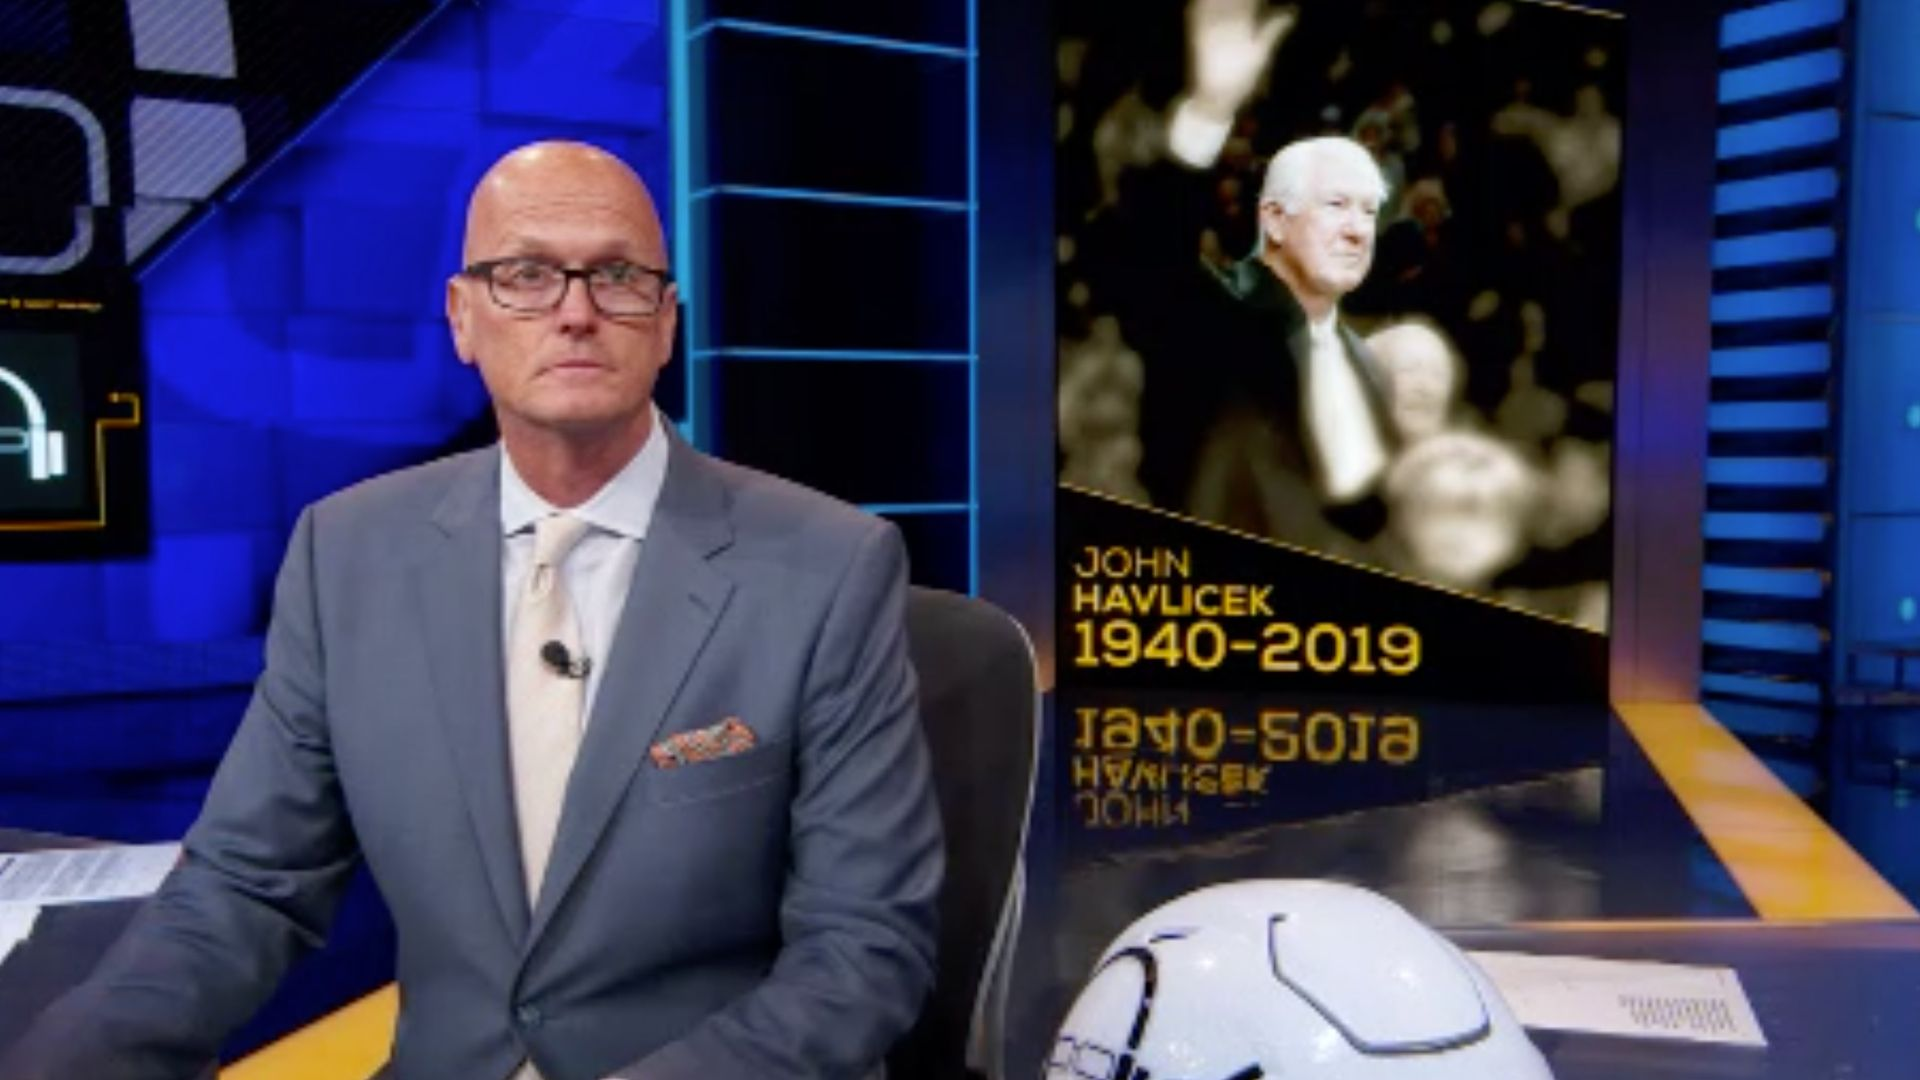 SVP reflects on the passing of Havlicek